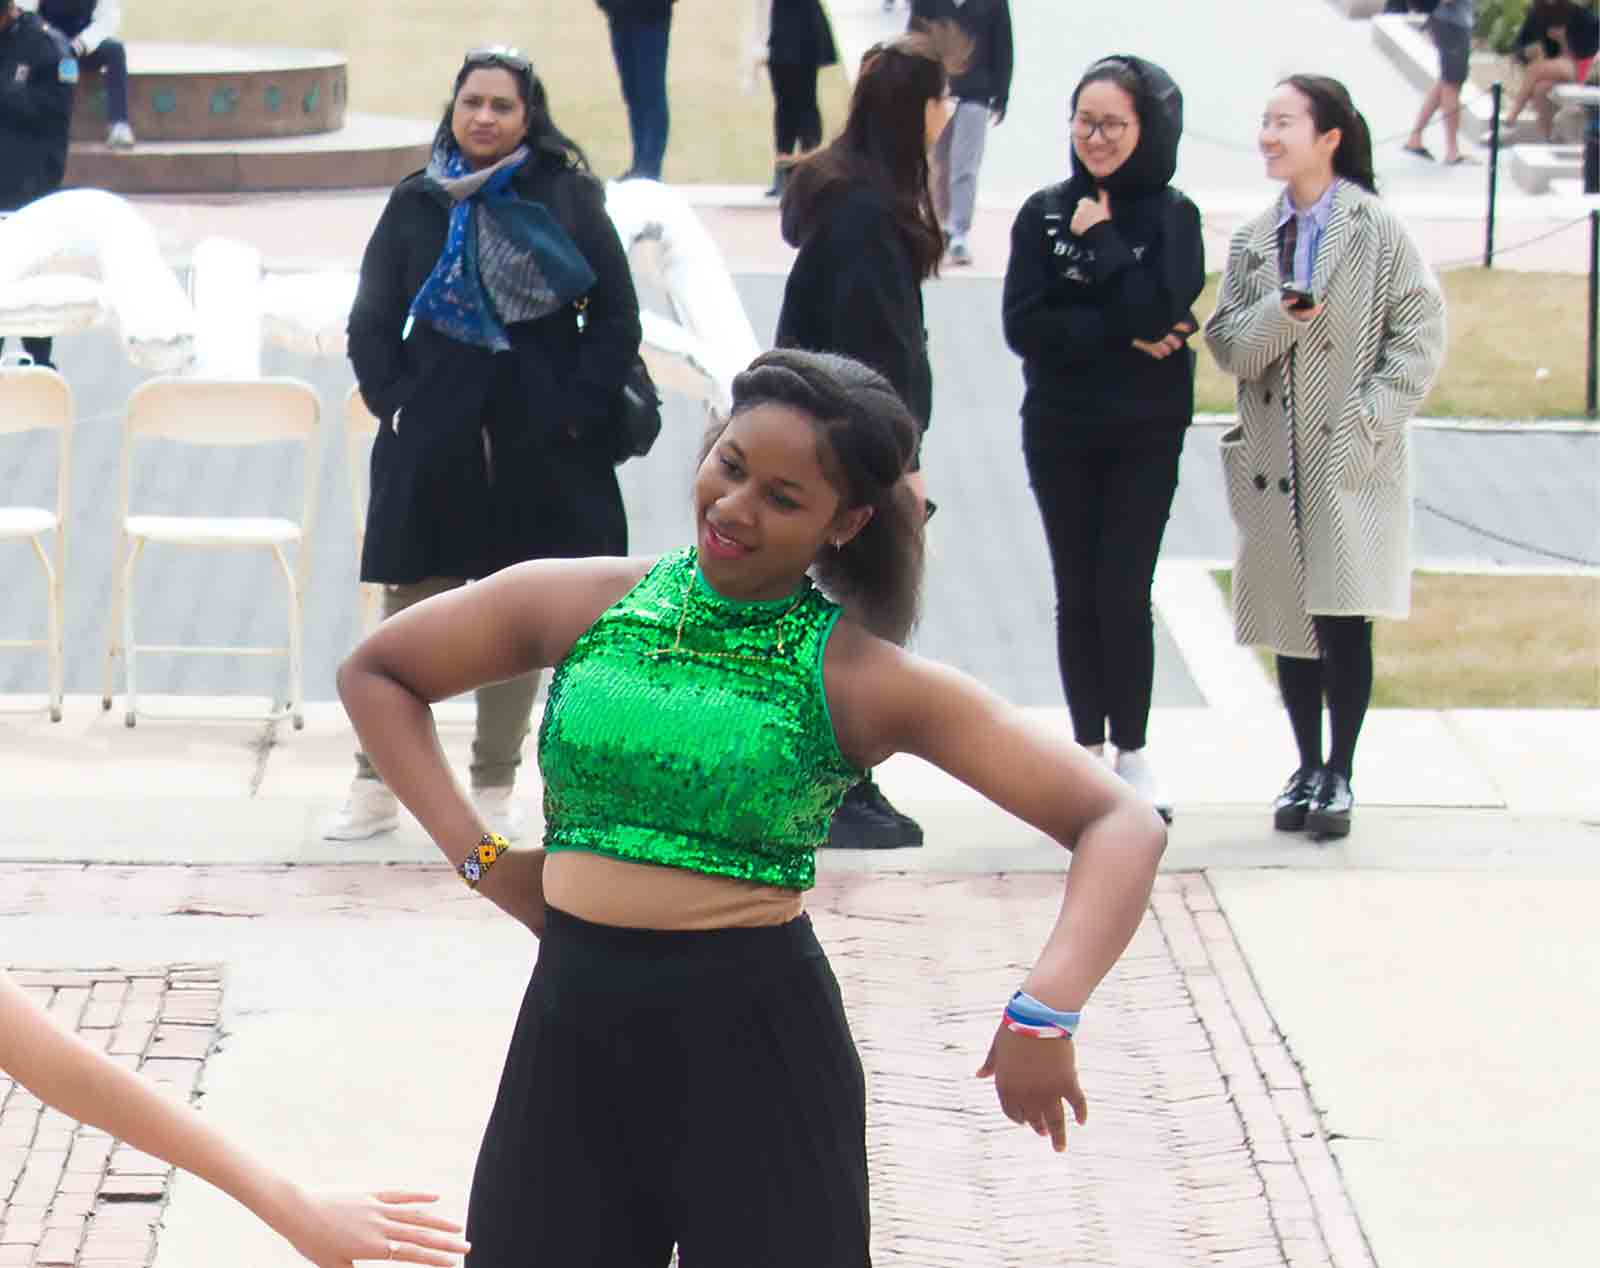 Young woman dancing wearing sequined green top